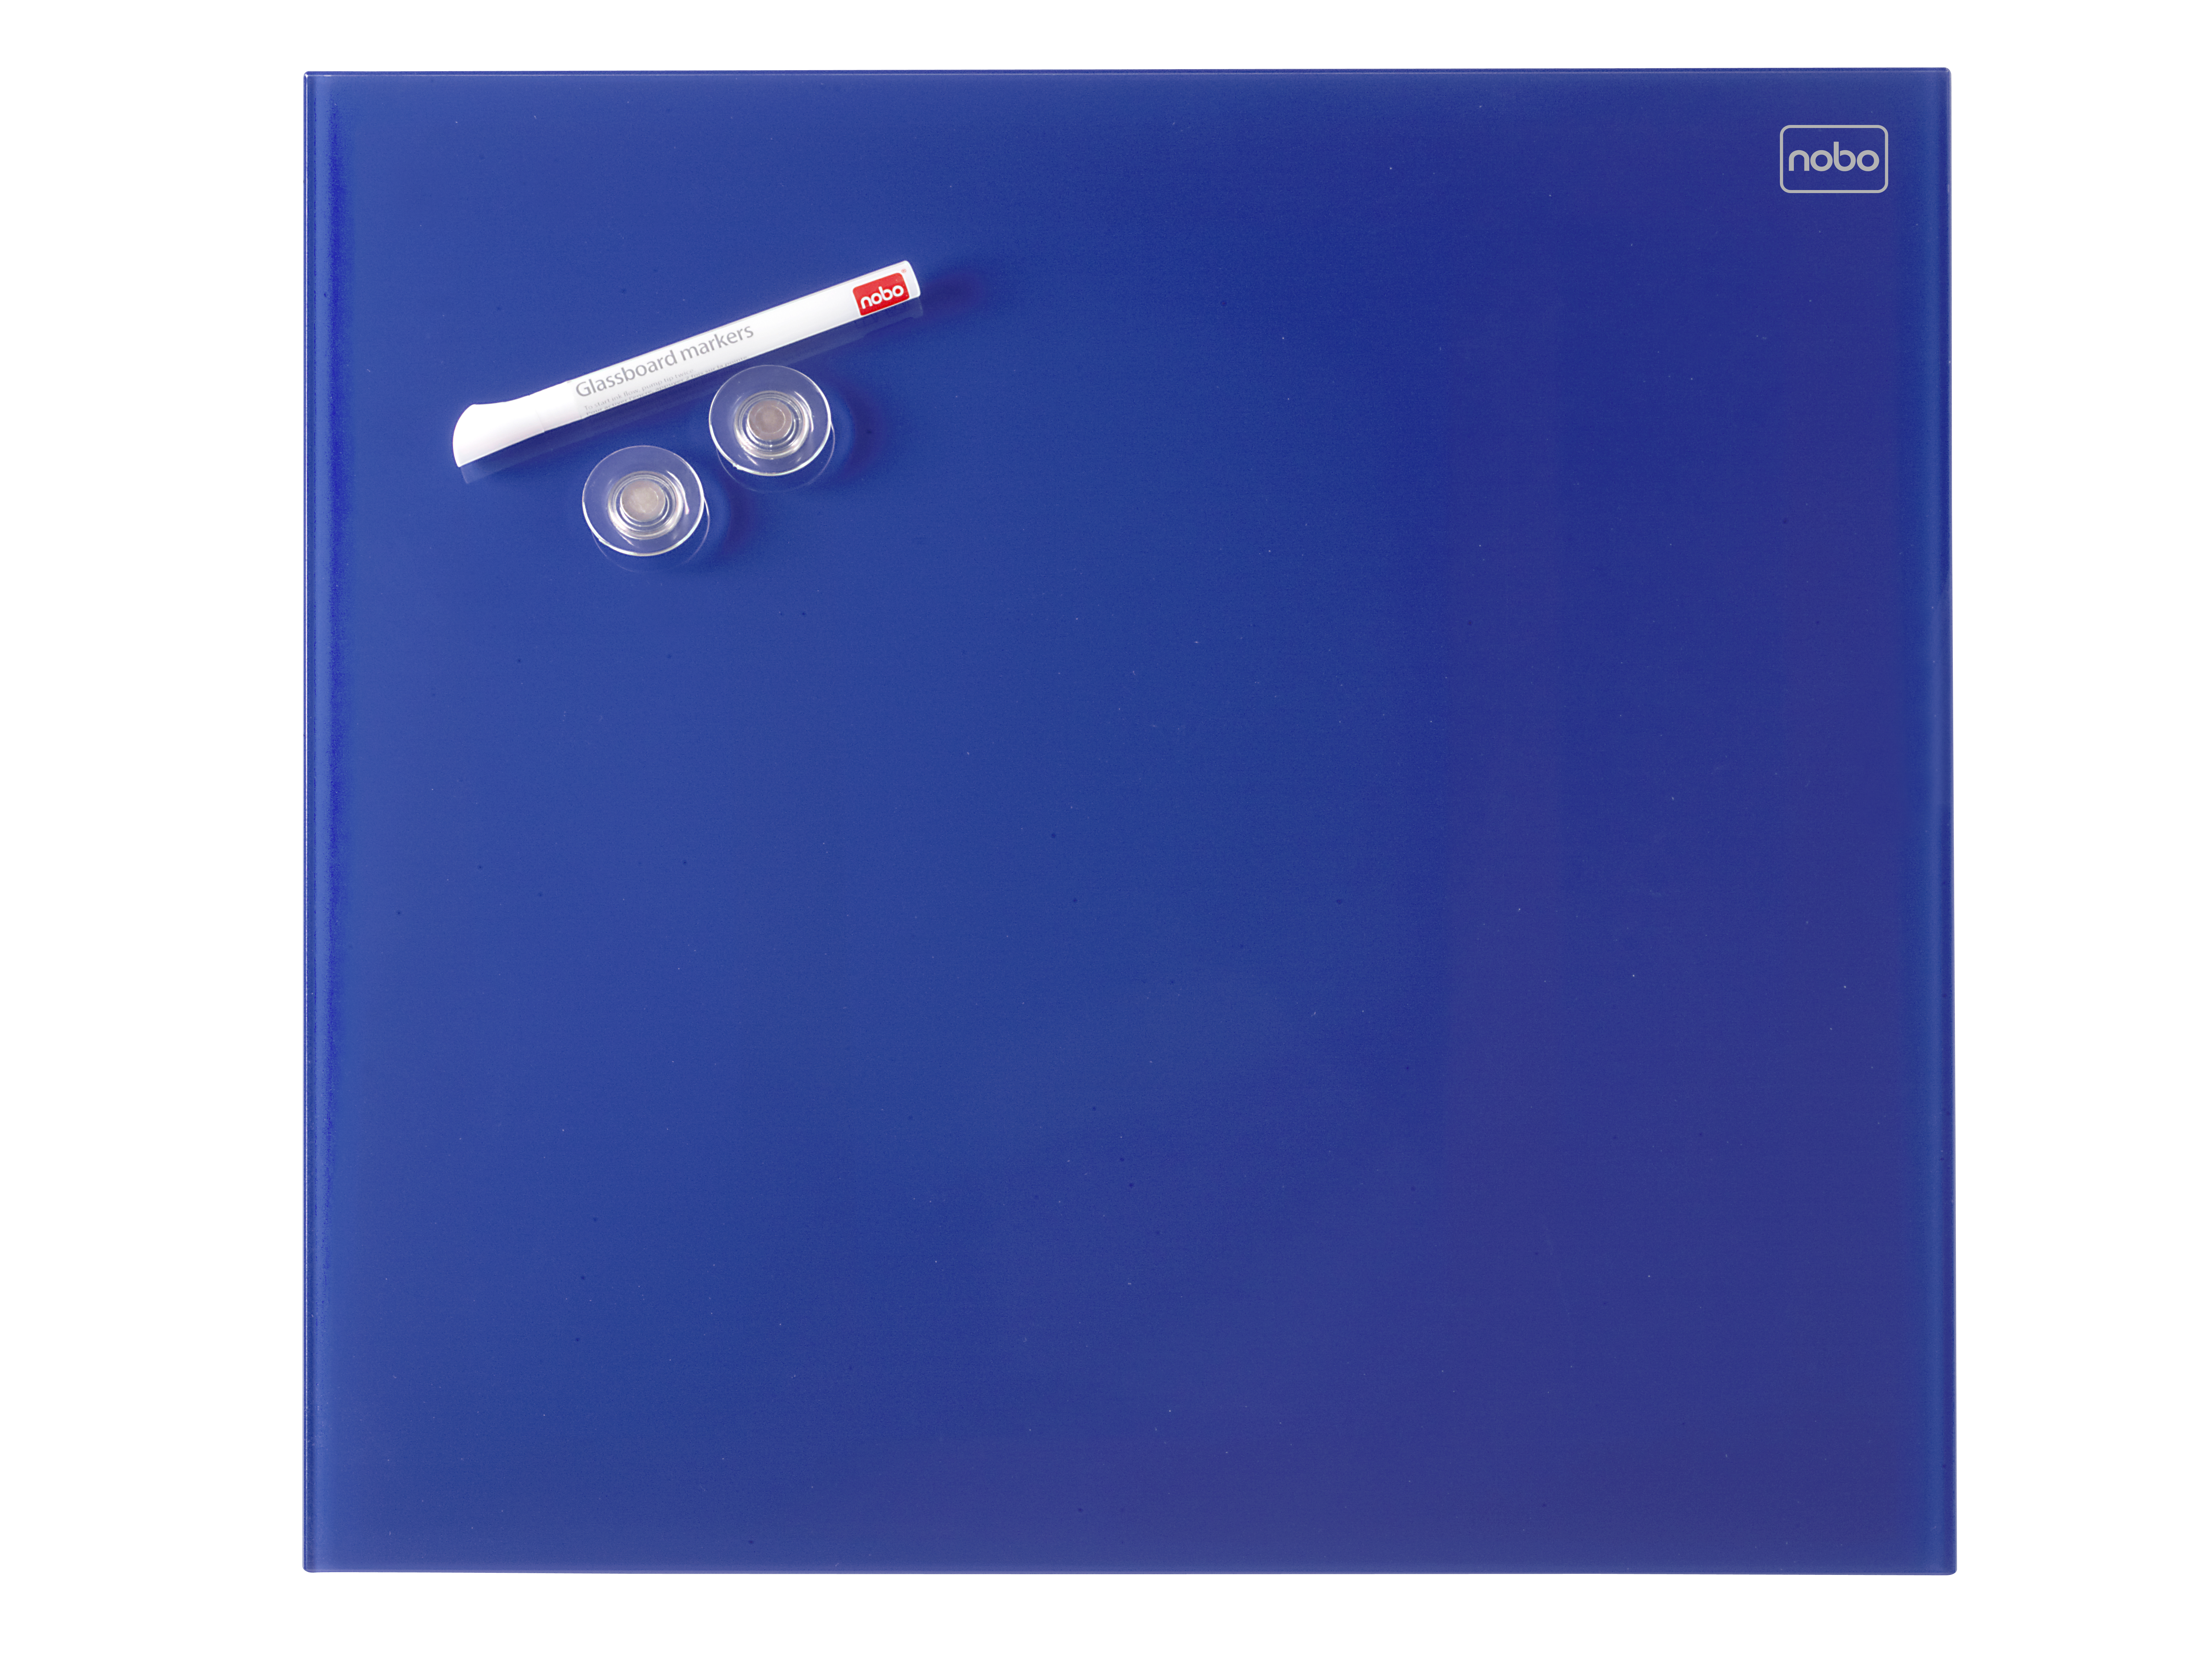 acco Nobo Diamond Drywipe Board Magnetic 300x300mm Blue Dd 1903952 - AD01